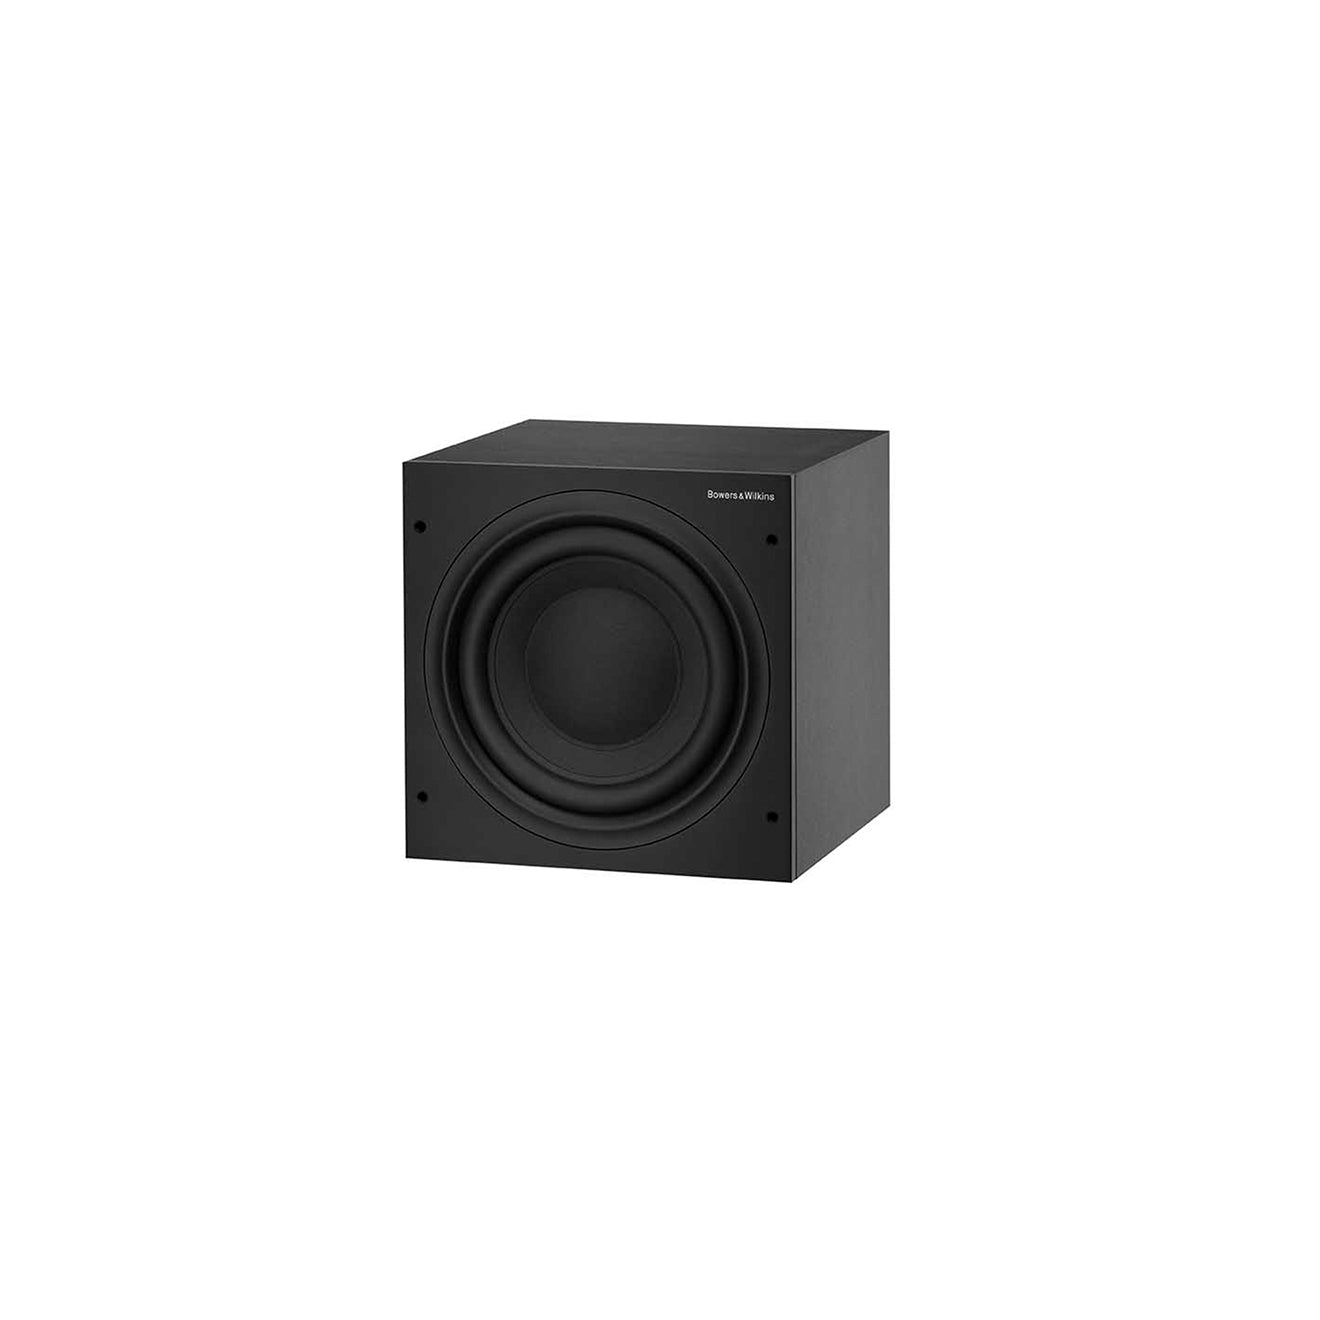 Bowers & Wilkins, ASW 610, Subwoofer, Black